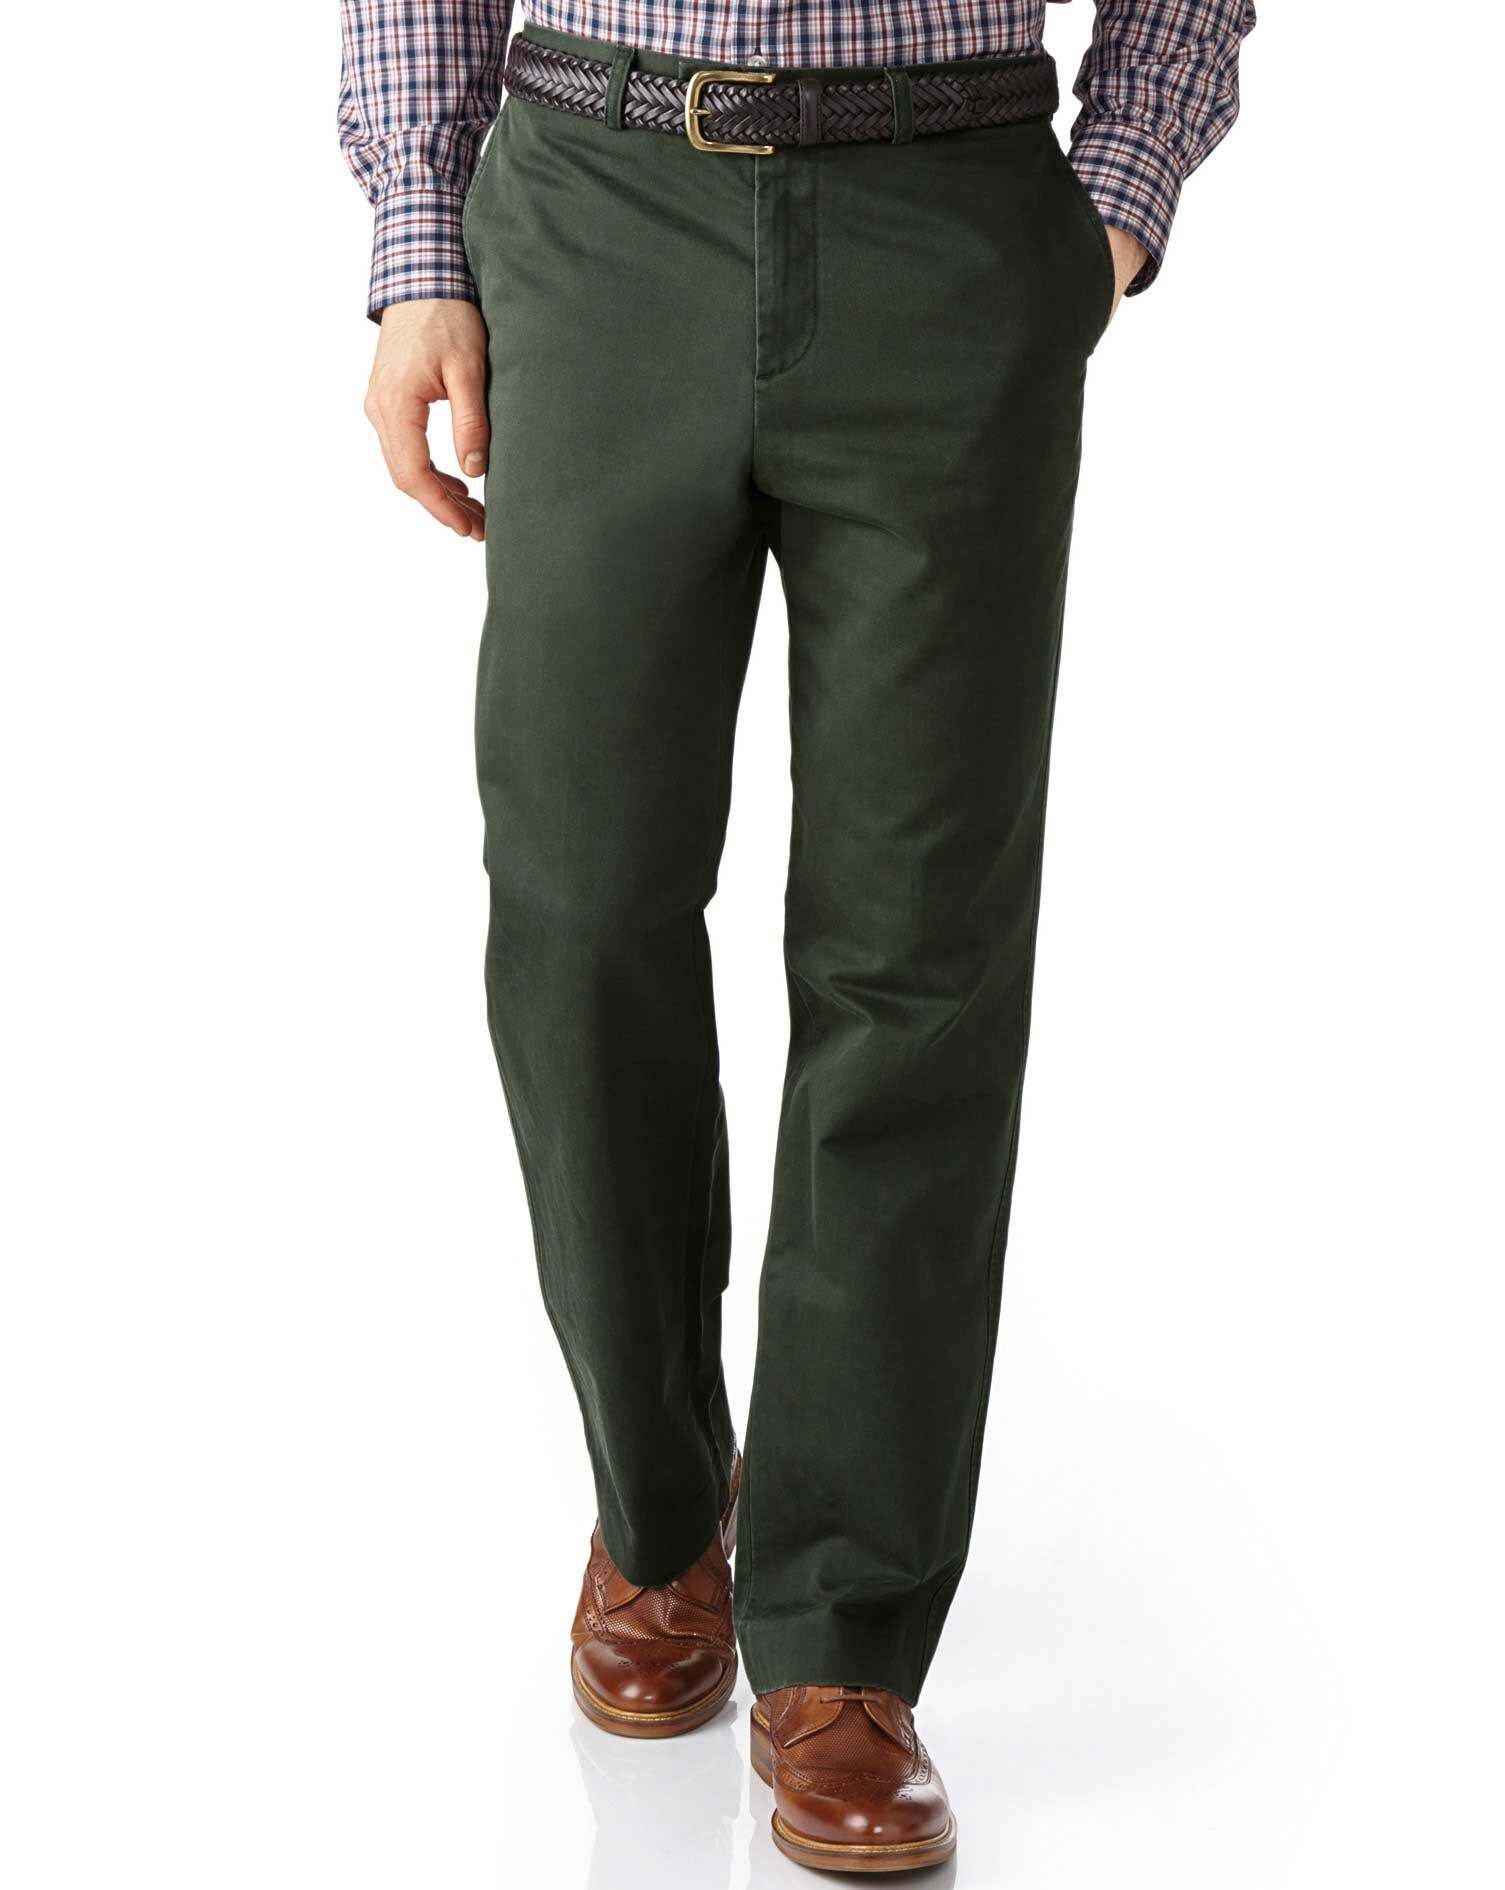 Dark Green Classic Fit Flat Front Weekend Cotton Chino Trousers Size W40 L30 by Charles Tyrwhitt